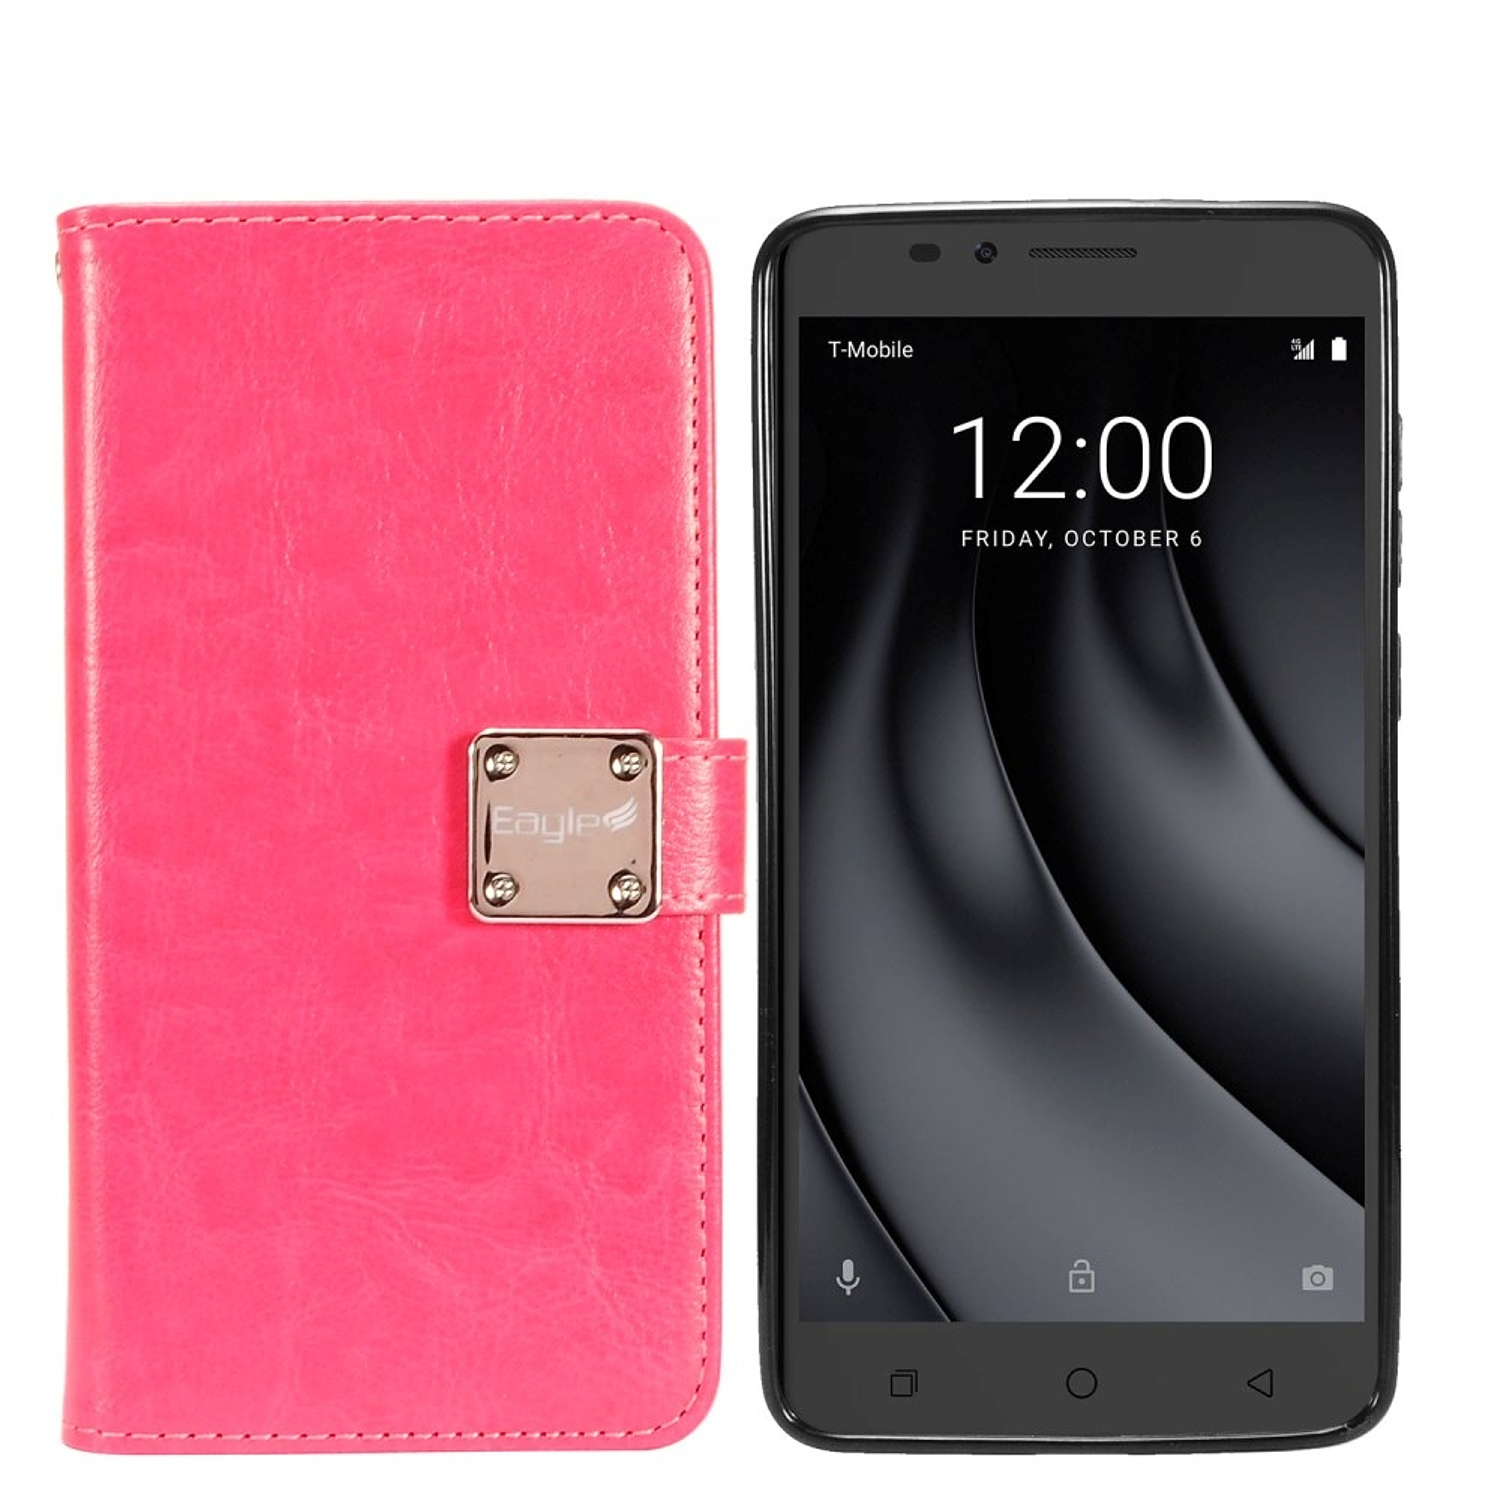 Coolpad Revvl Plus (T-Mobile) Case, by Insten Detachable Magnetic Folio Flip Leather Case Cover w/[Card Slot] Wallet Flap Pouch/Photo Display For Coolpad Revvl Plus (T-Mobile)